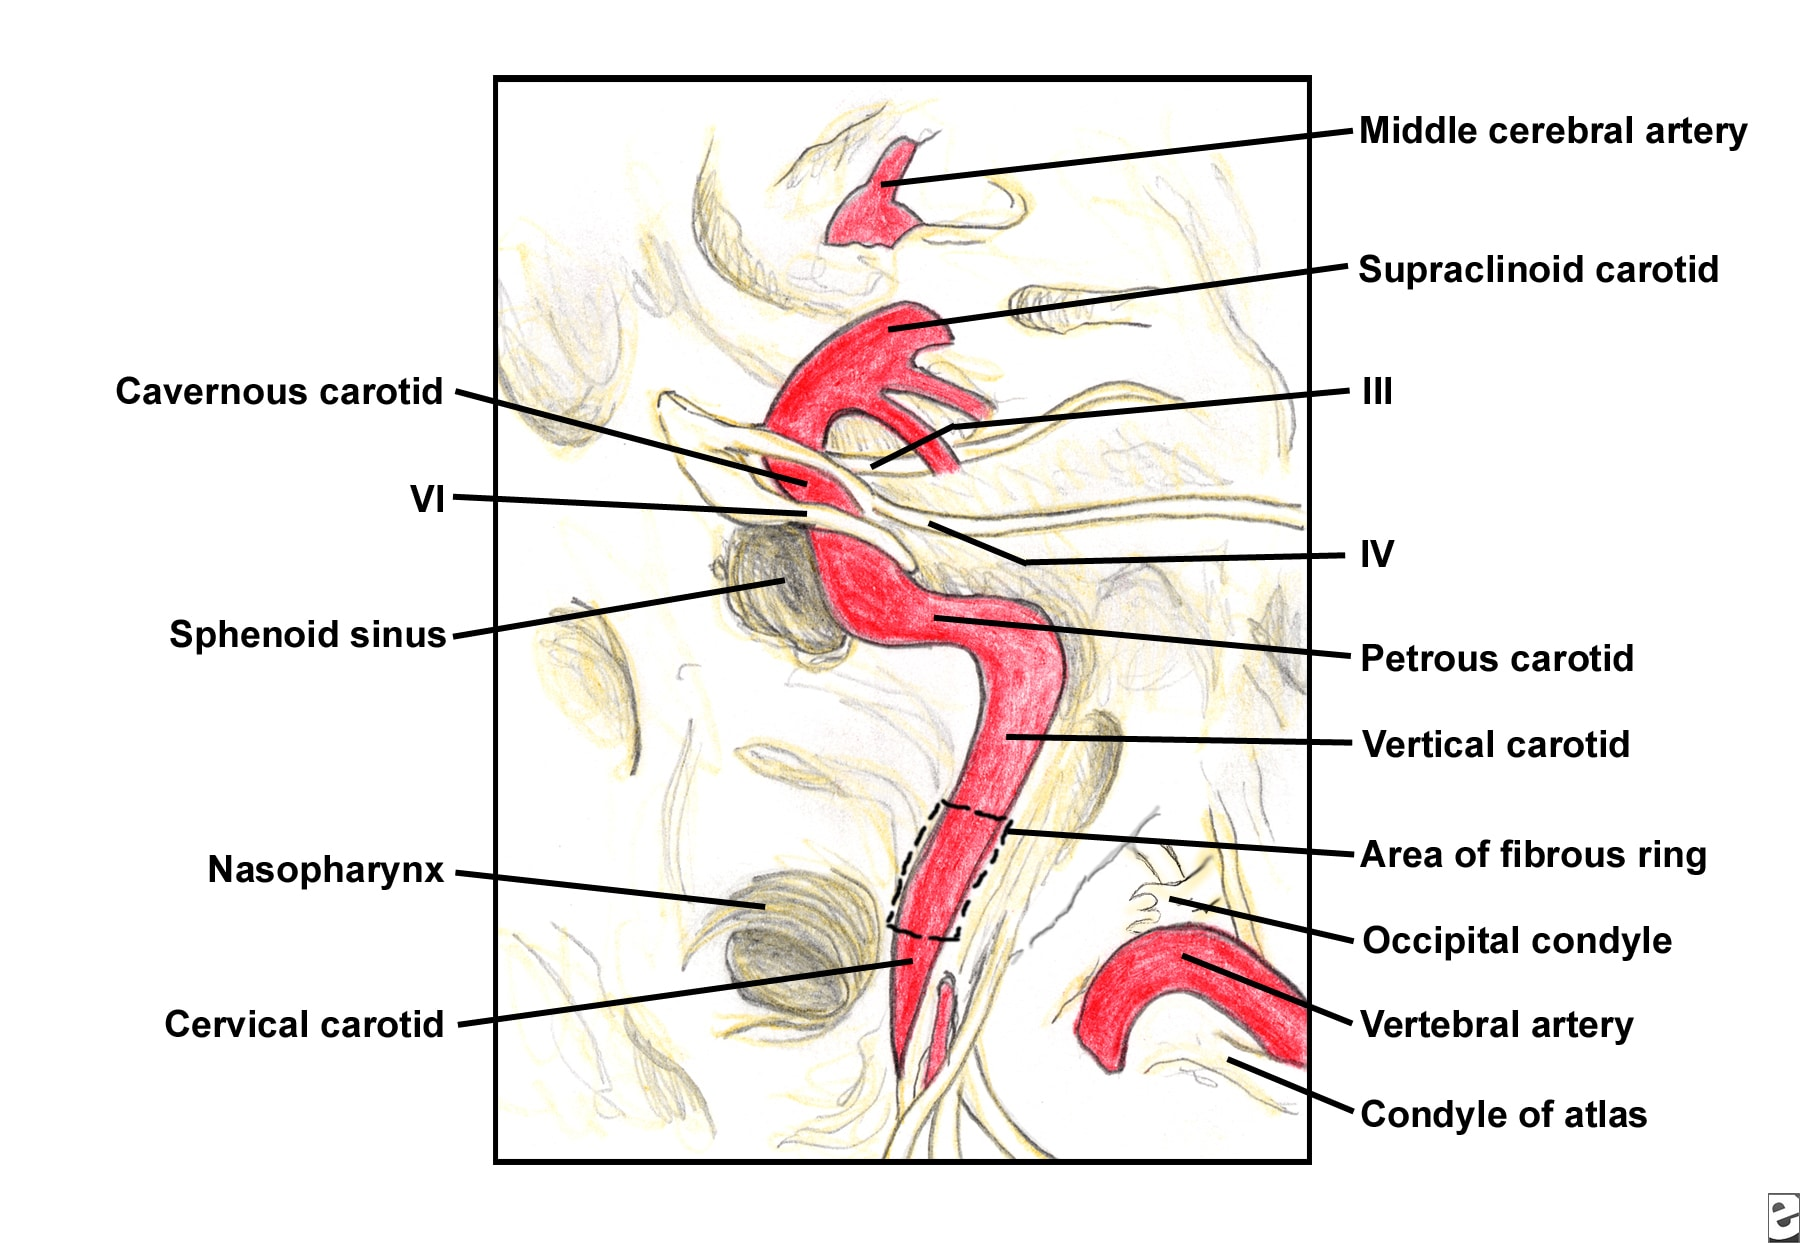 Anatomy of the internal carotid artery 7896684 - follow4more.info